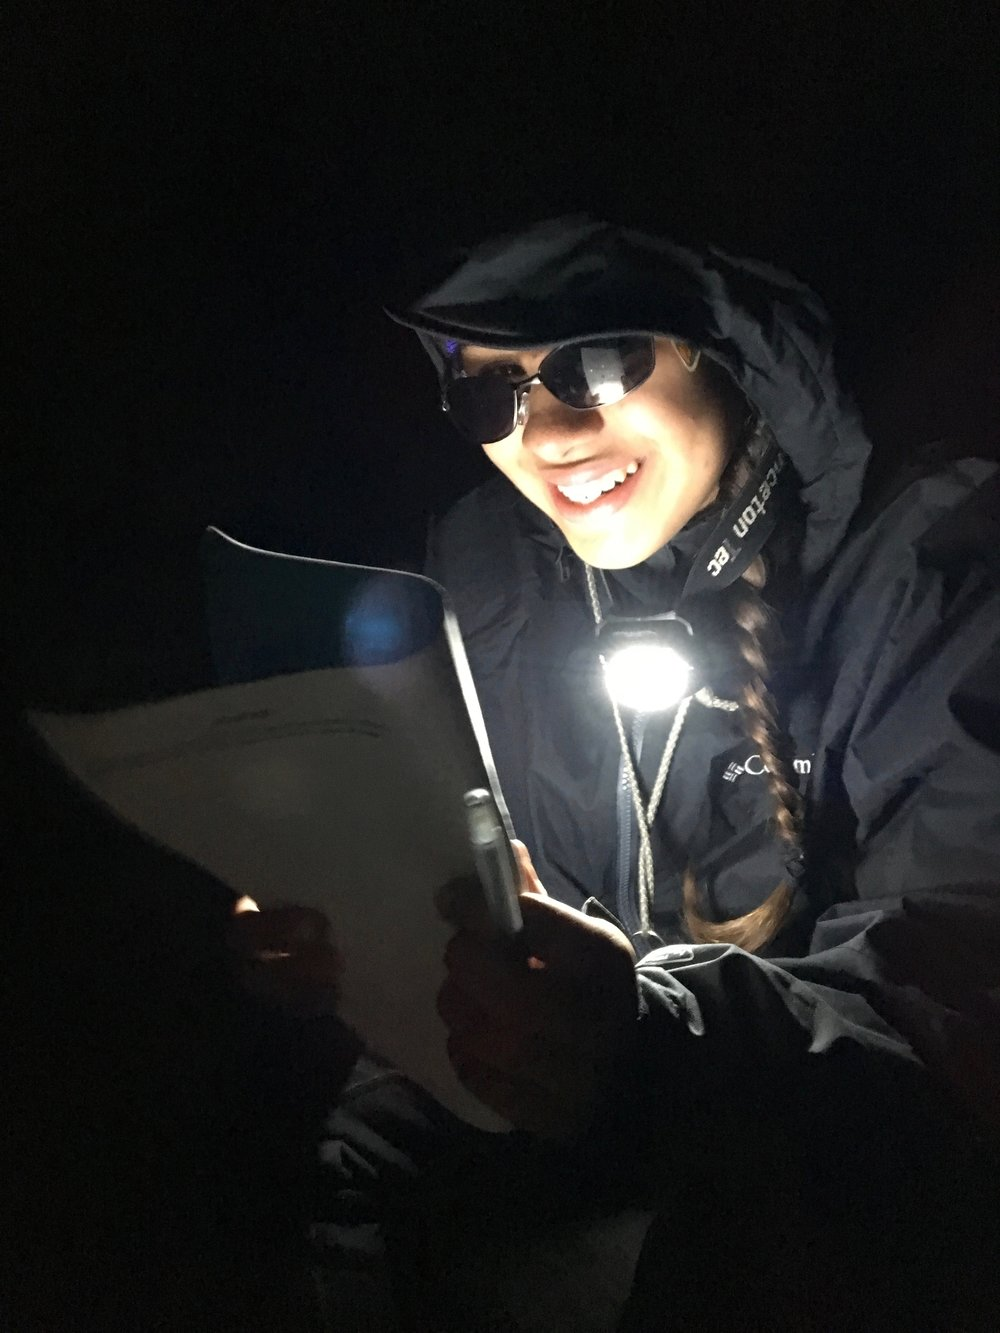 Laughs cracks us up by wearing her 'Neo' glasses at night.